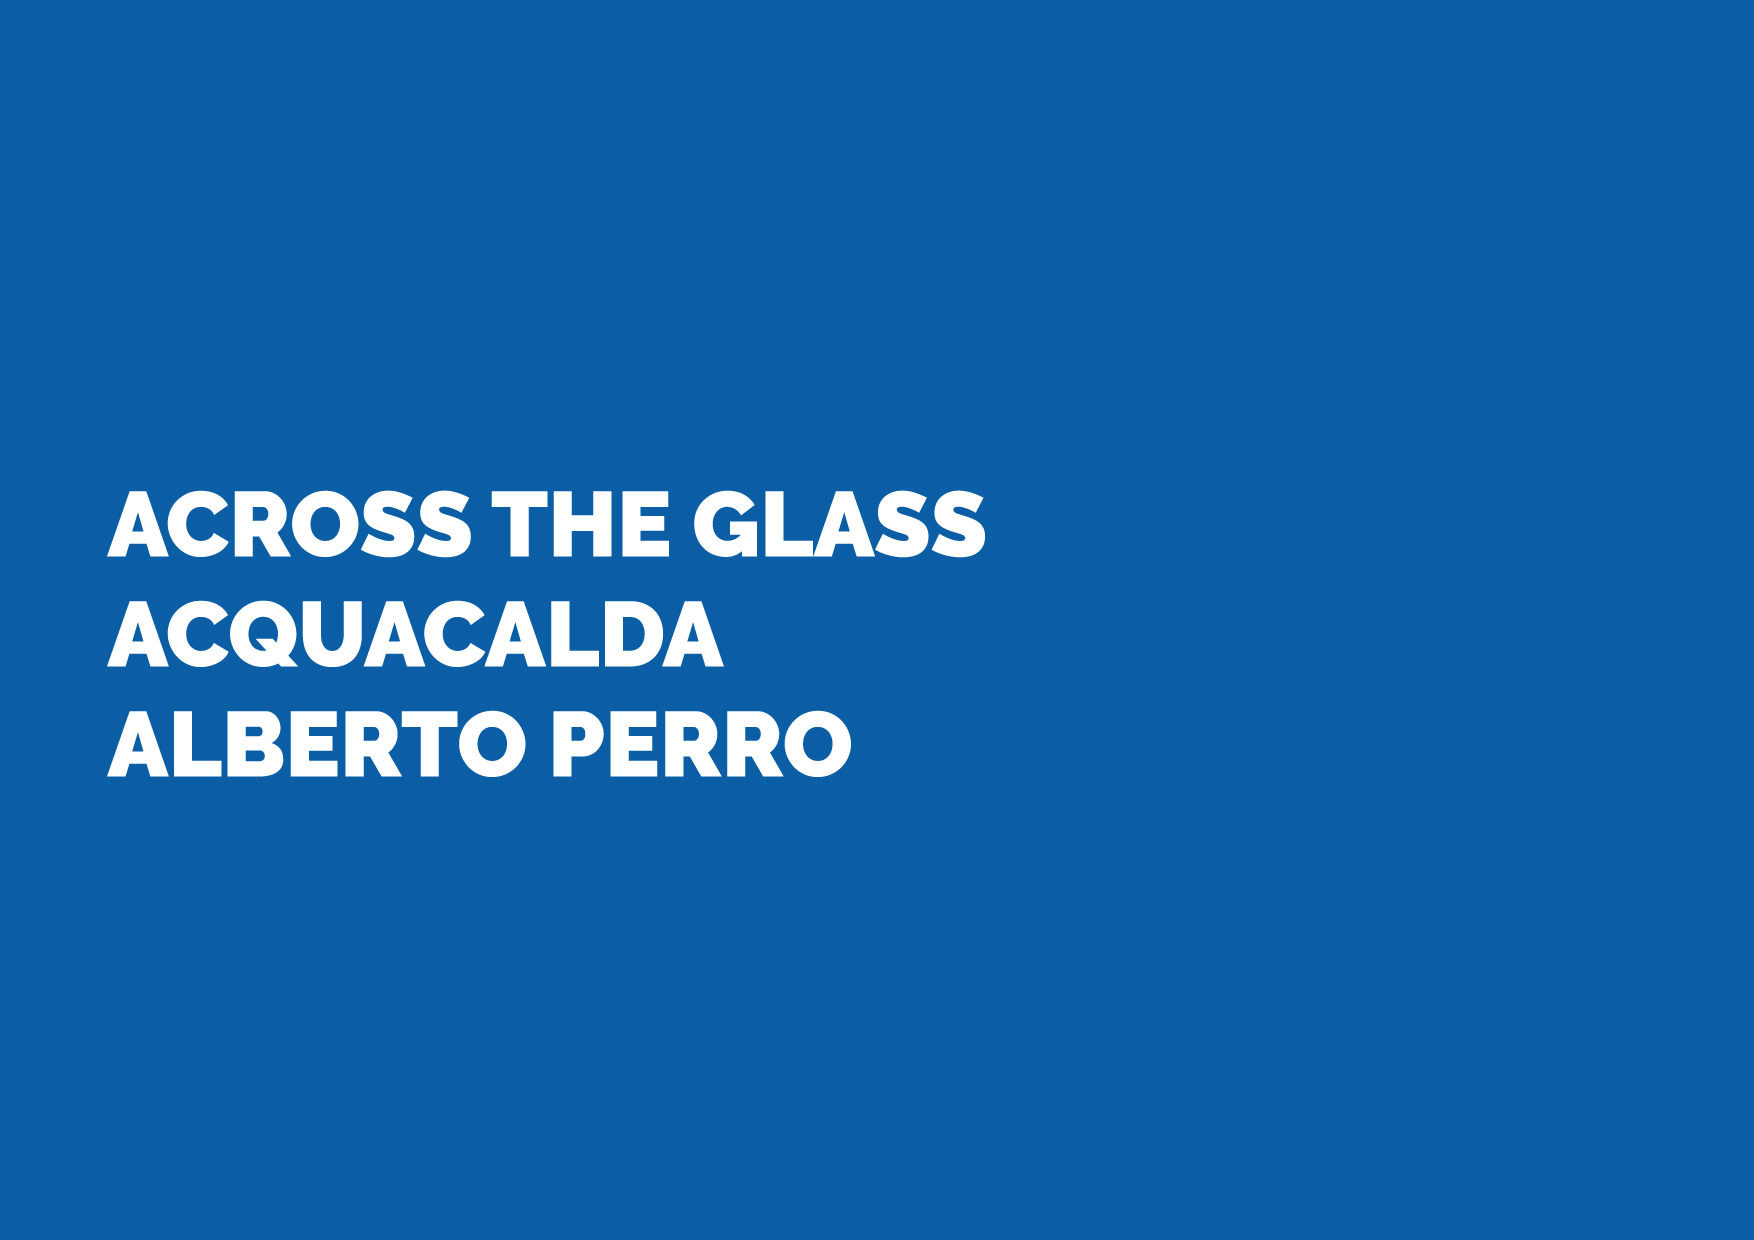 ACROSS THE GLASS / ACQUACALDA / ALBERTO PERRO